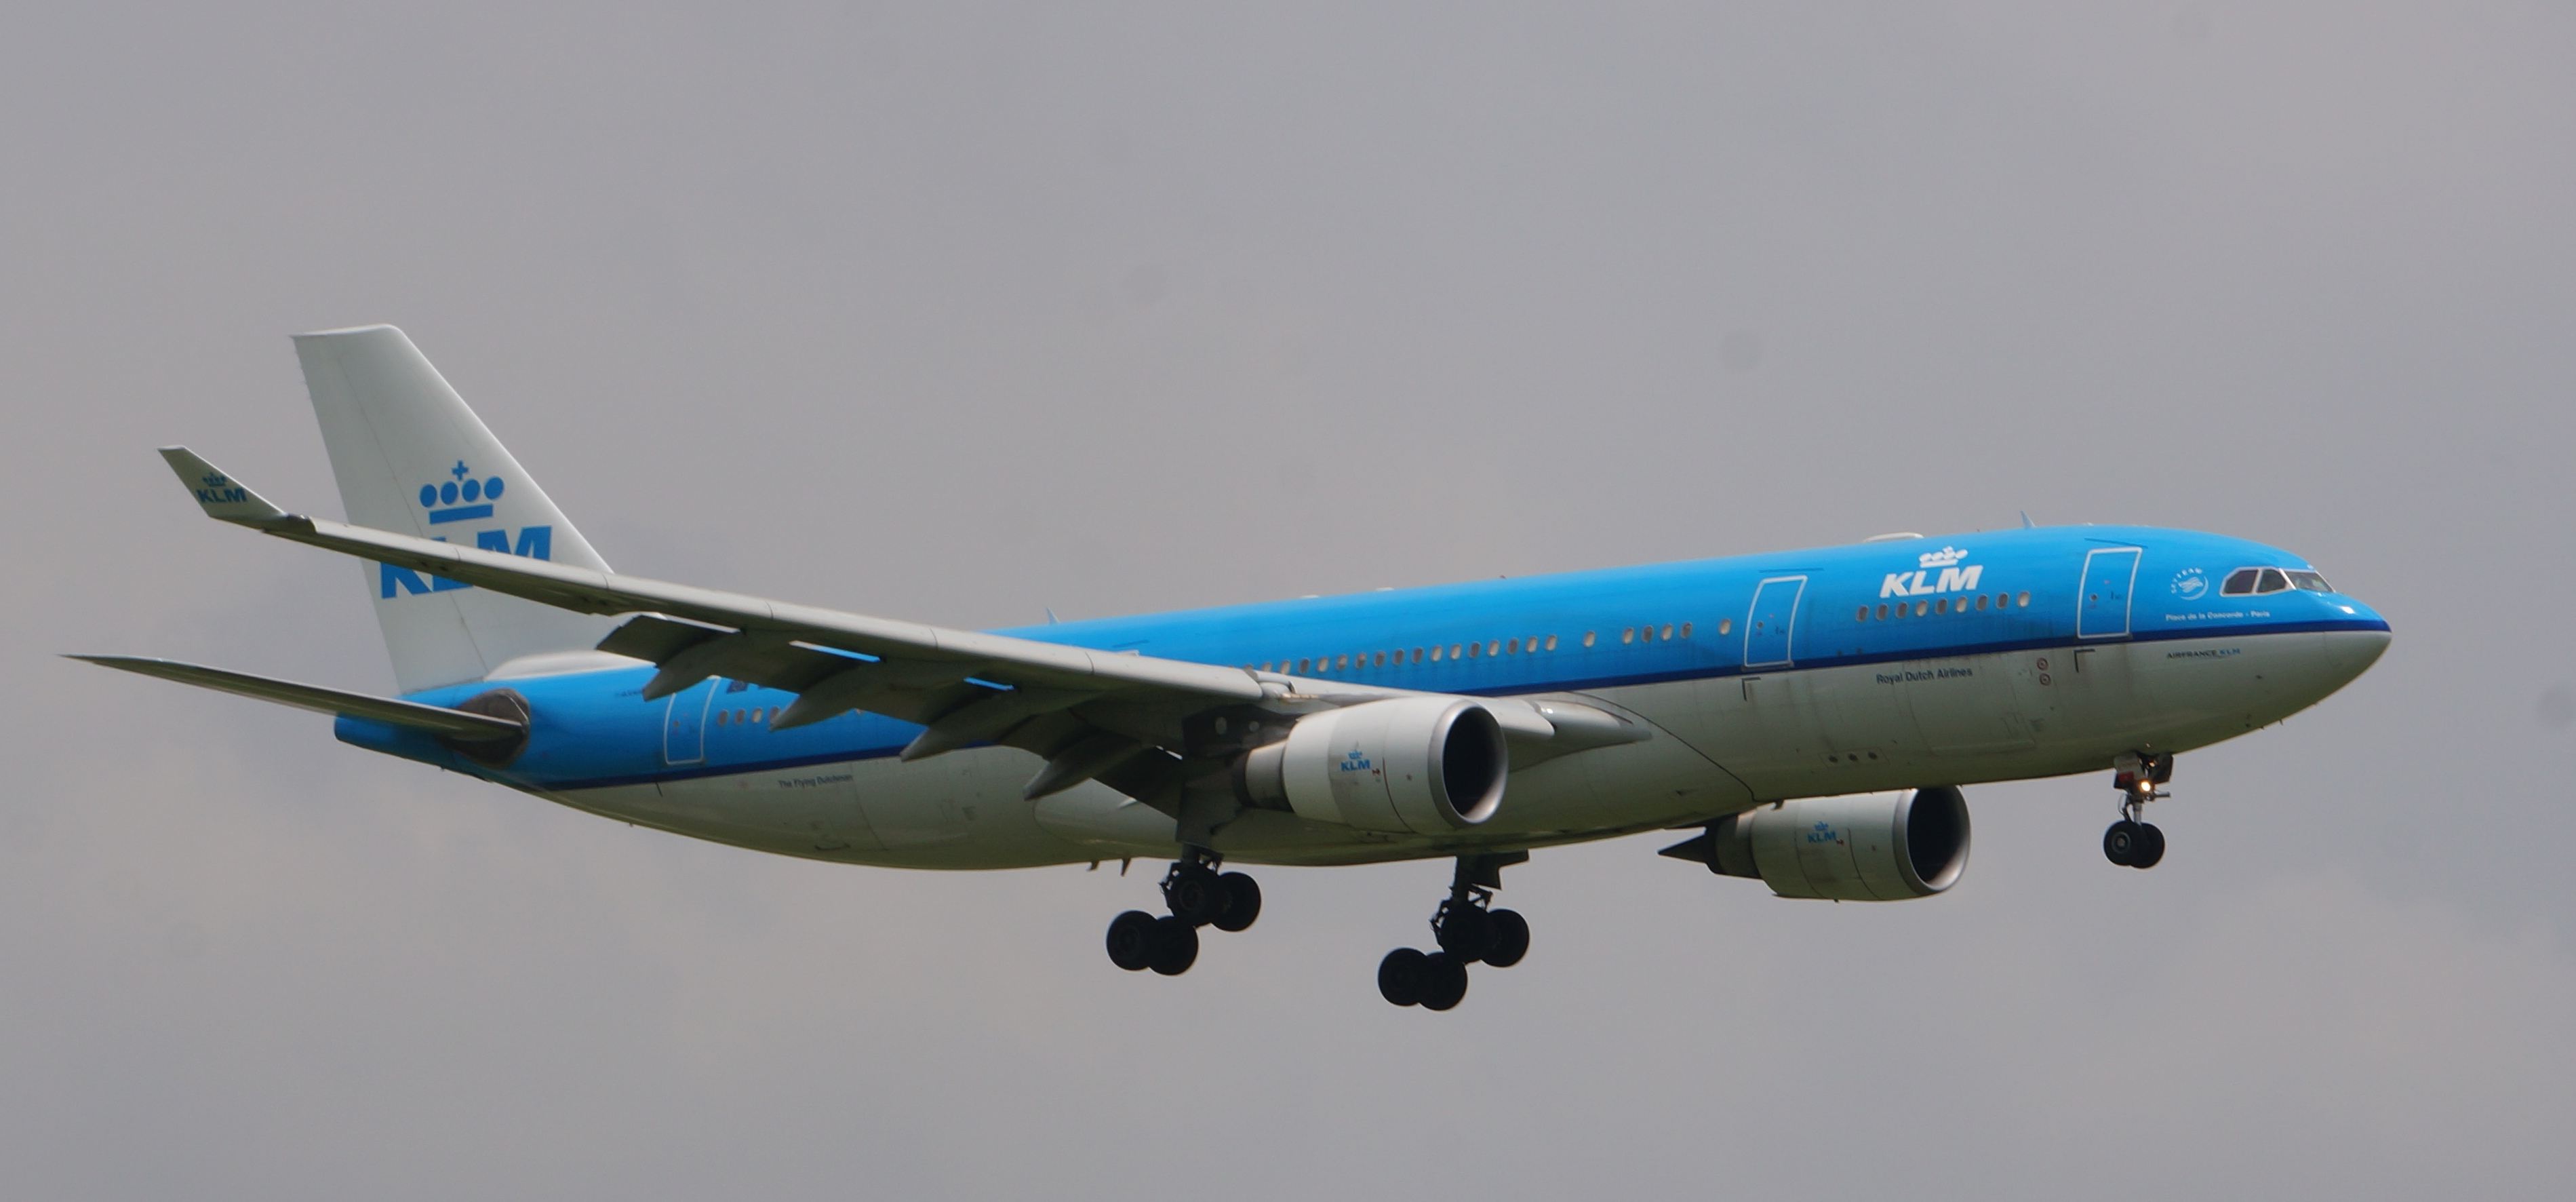 KLM began service at D/FW Airport in 2008. In recent years, its ...